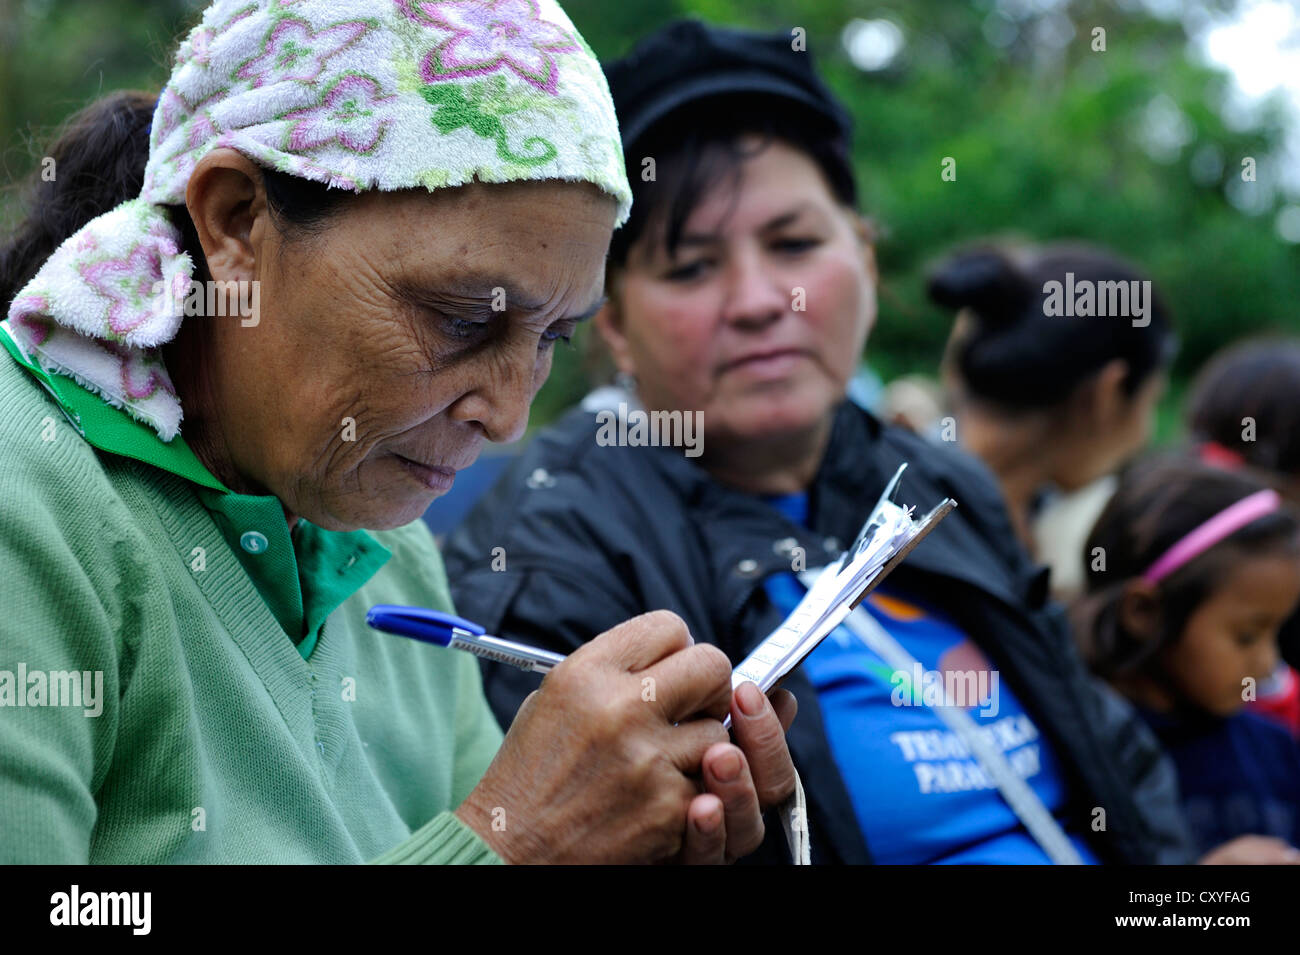 Woman signing an attendance sheet, the aid organisation provides health services and education for mothers and children - Stock Image